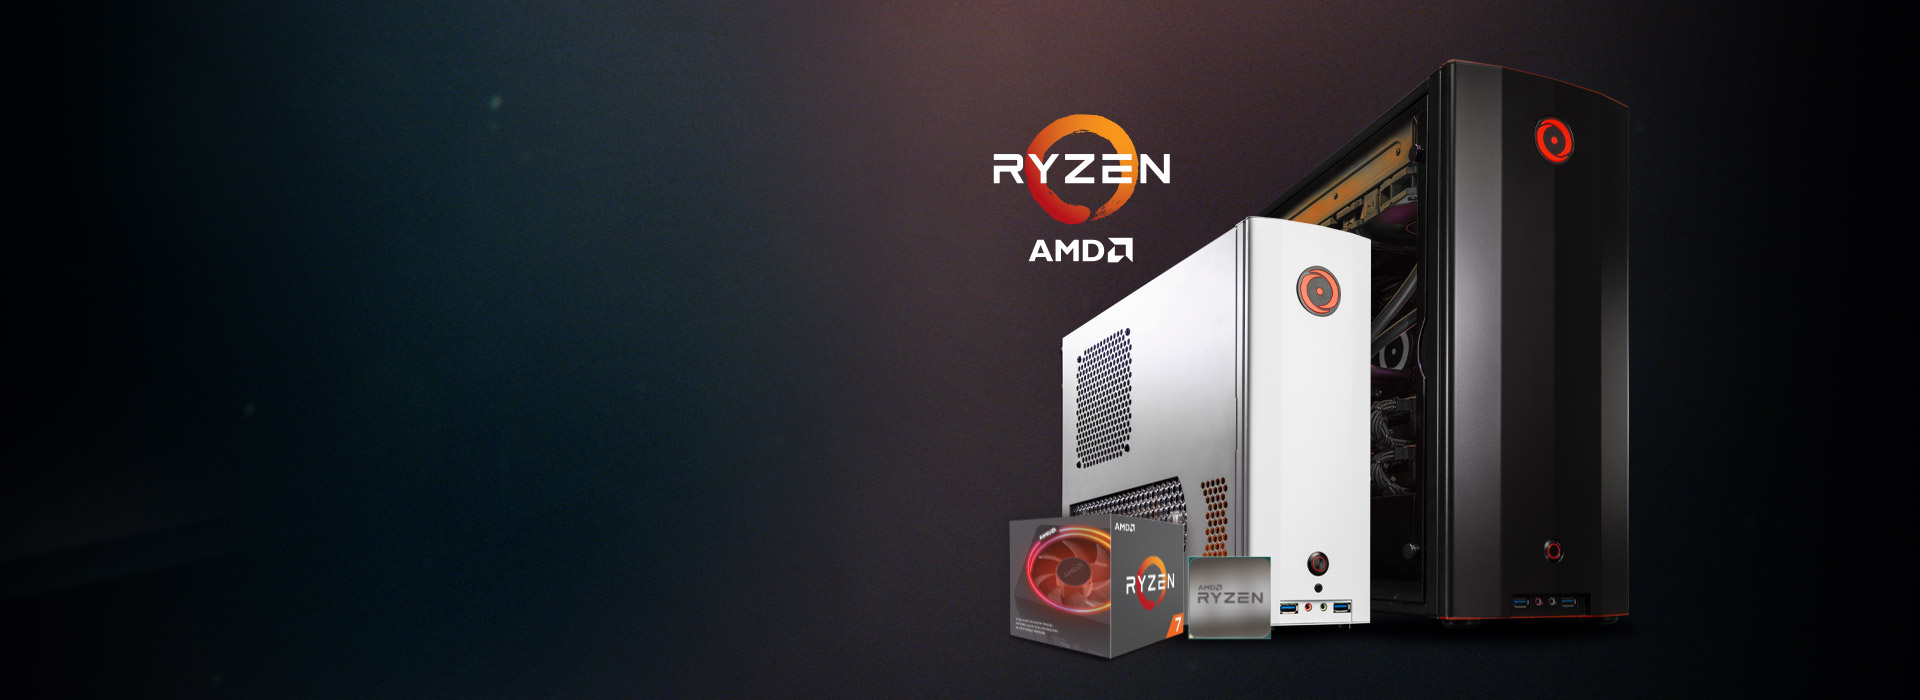 ORIGIN PC Event Systems Powered by AMD Ryzen